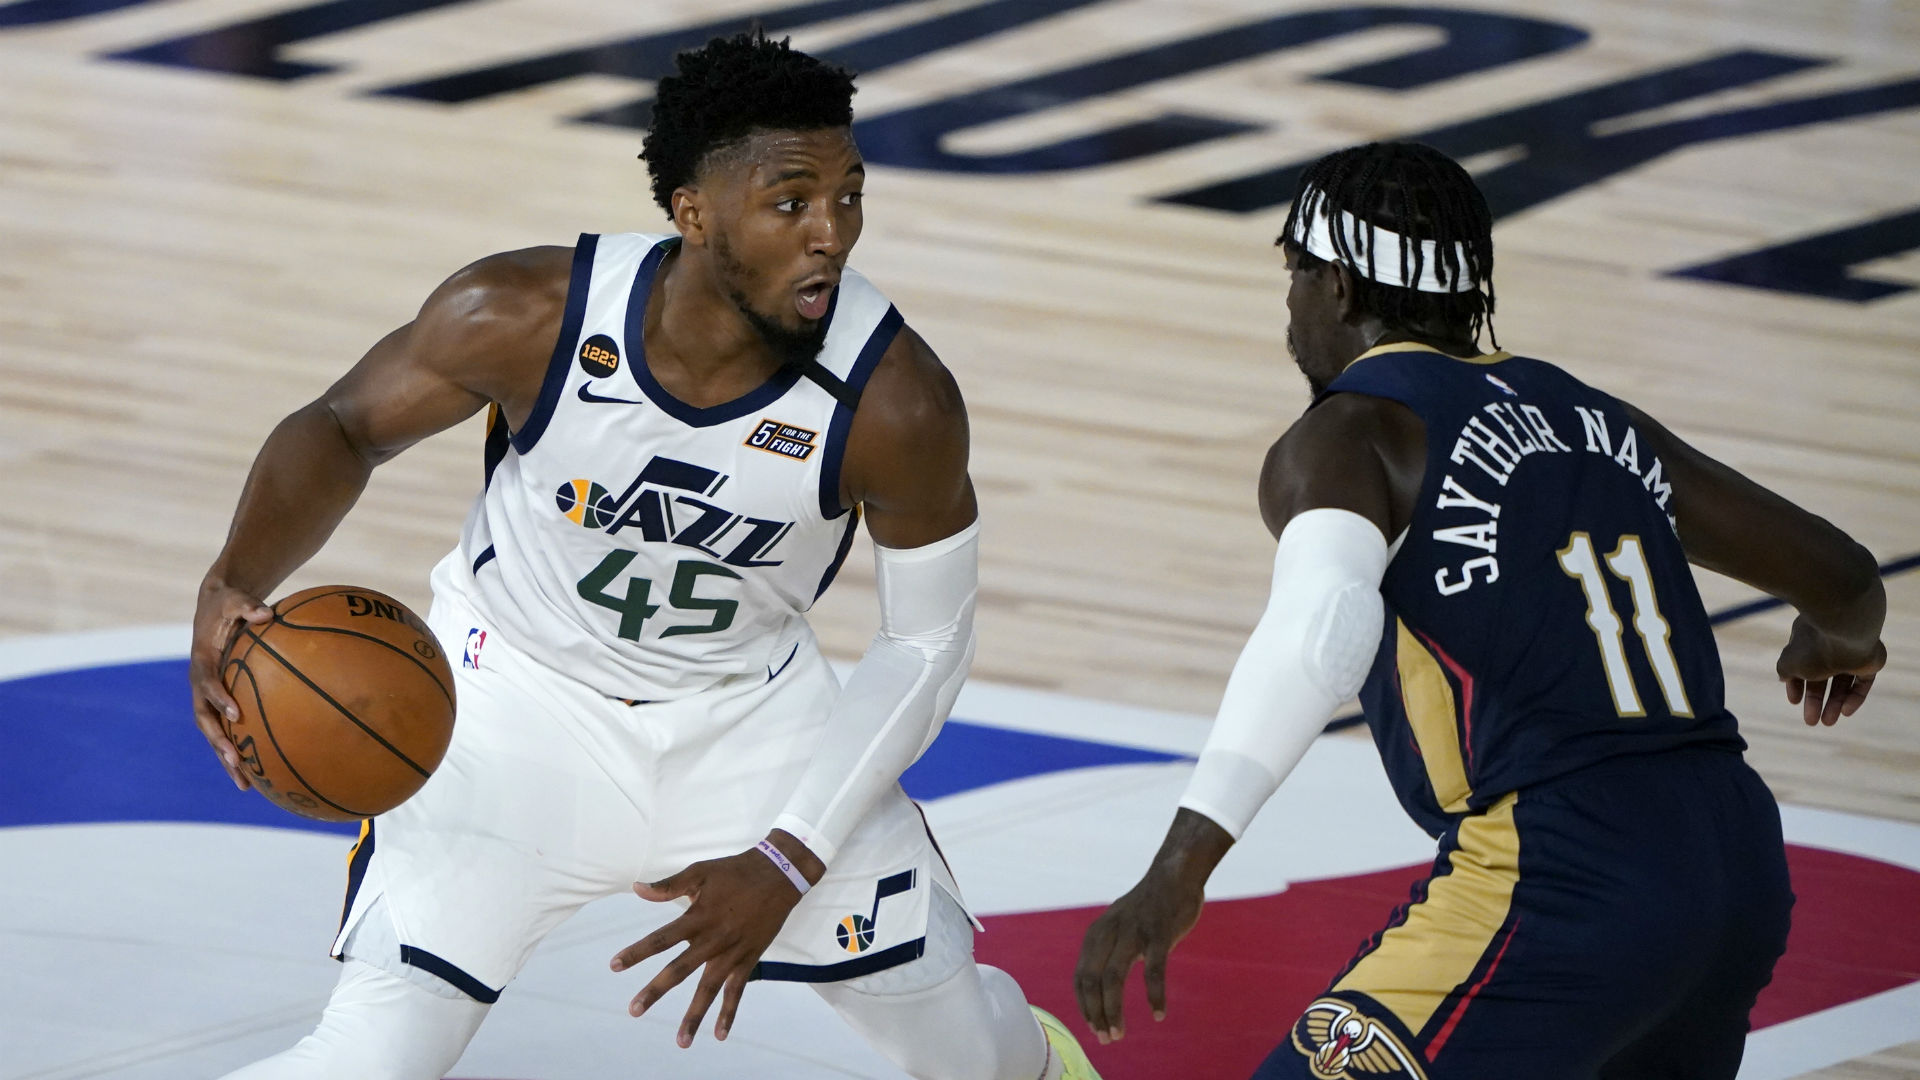 Pelicans Vs Jazz Score Highlights Utah Snatches Victory From New Orleans In Nba Restart Opener Sporting News